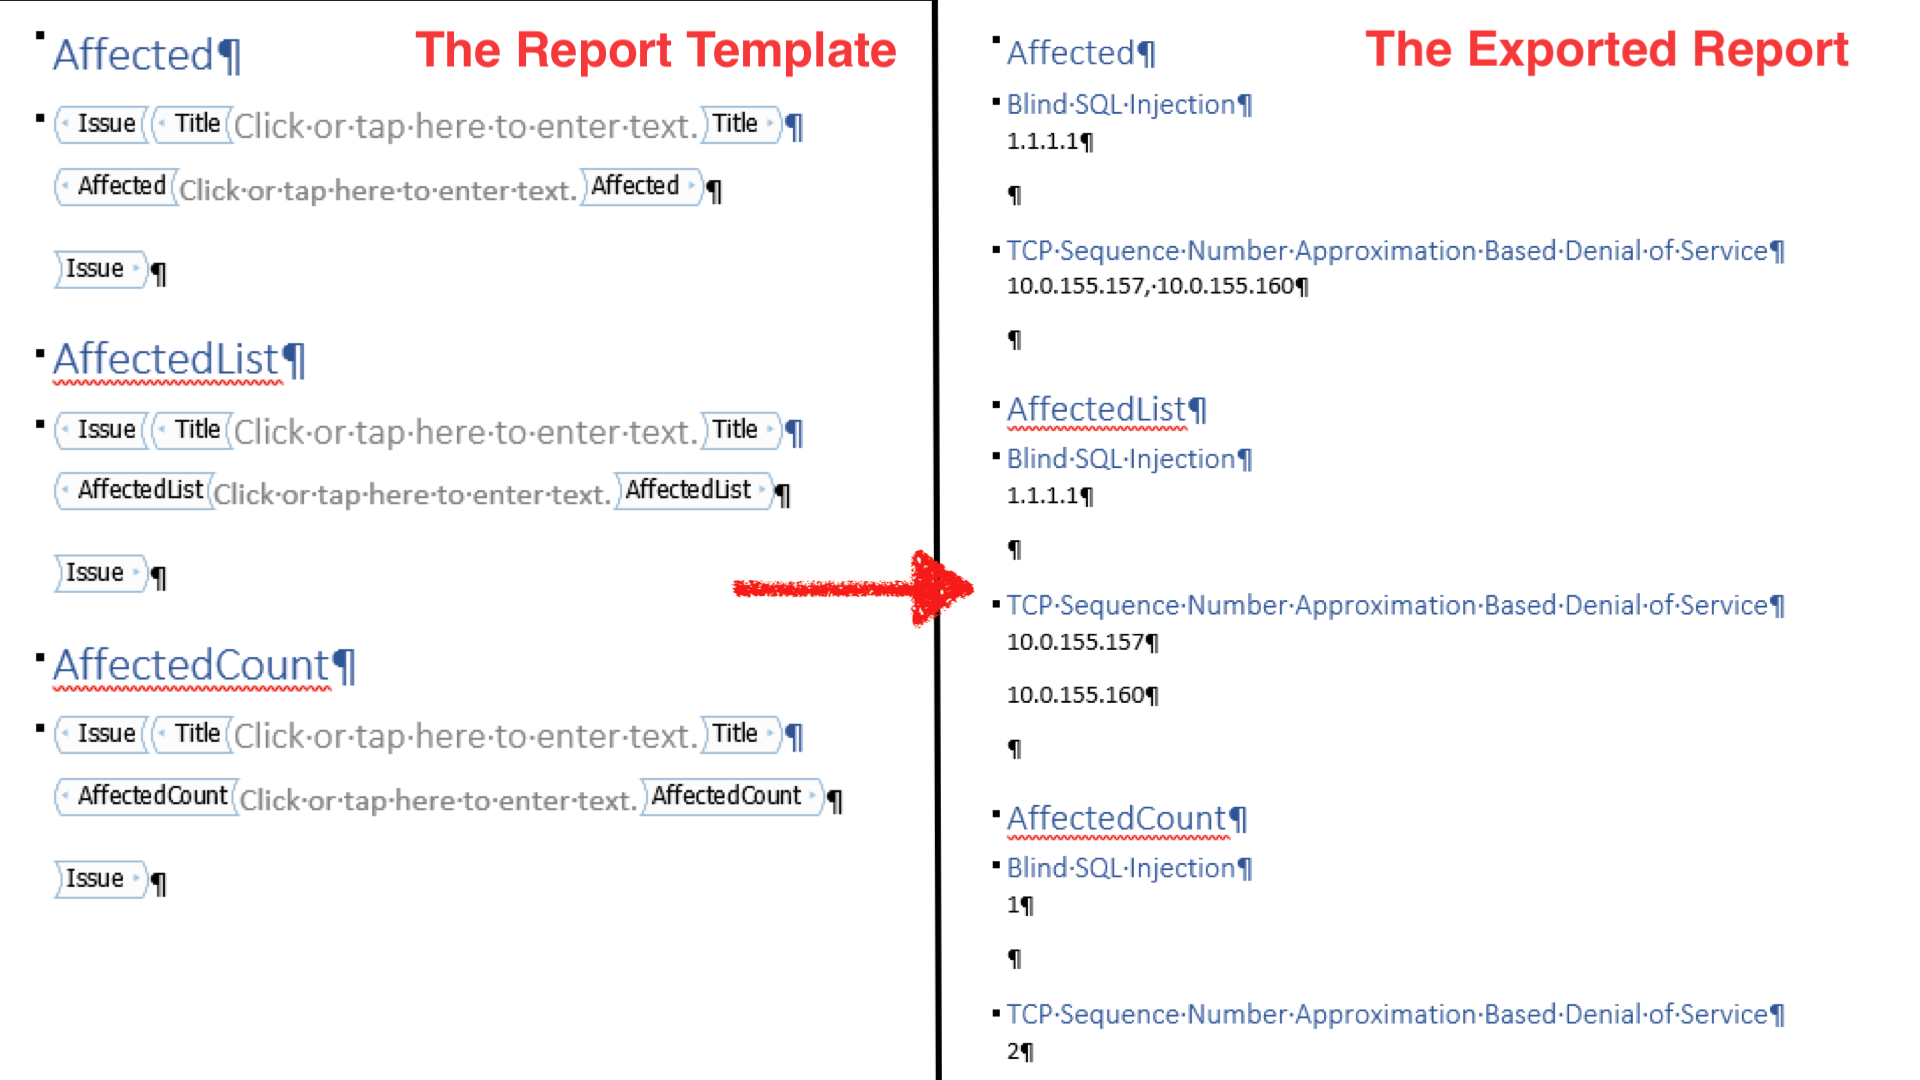 The AffectedList and AffectedCount content controls can be used in your Word report templates